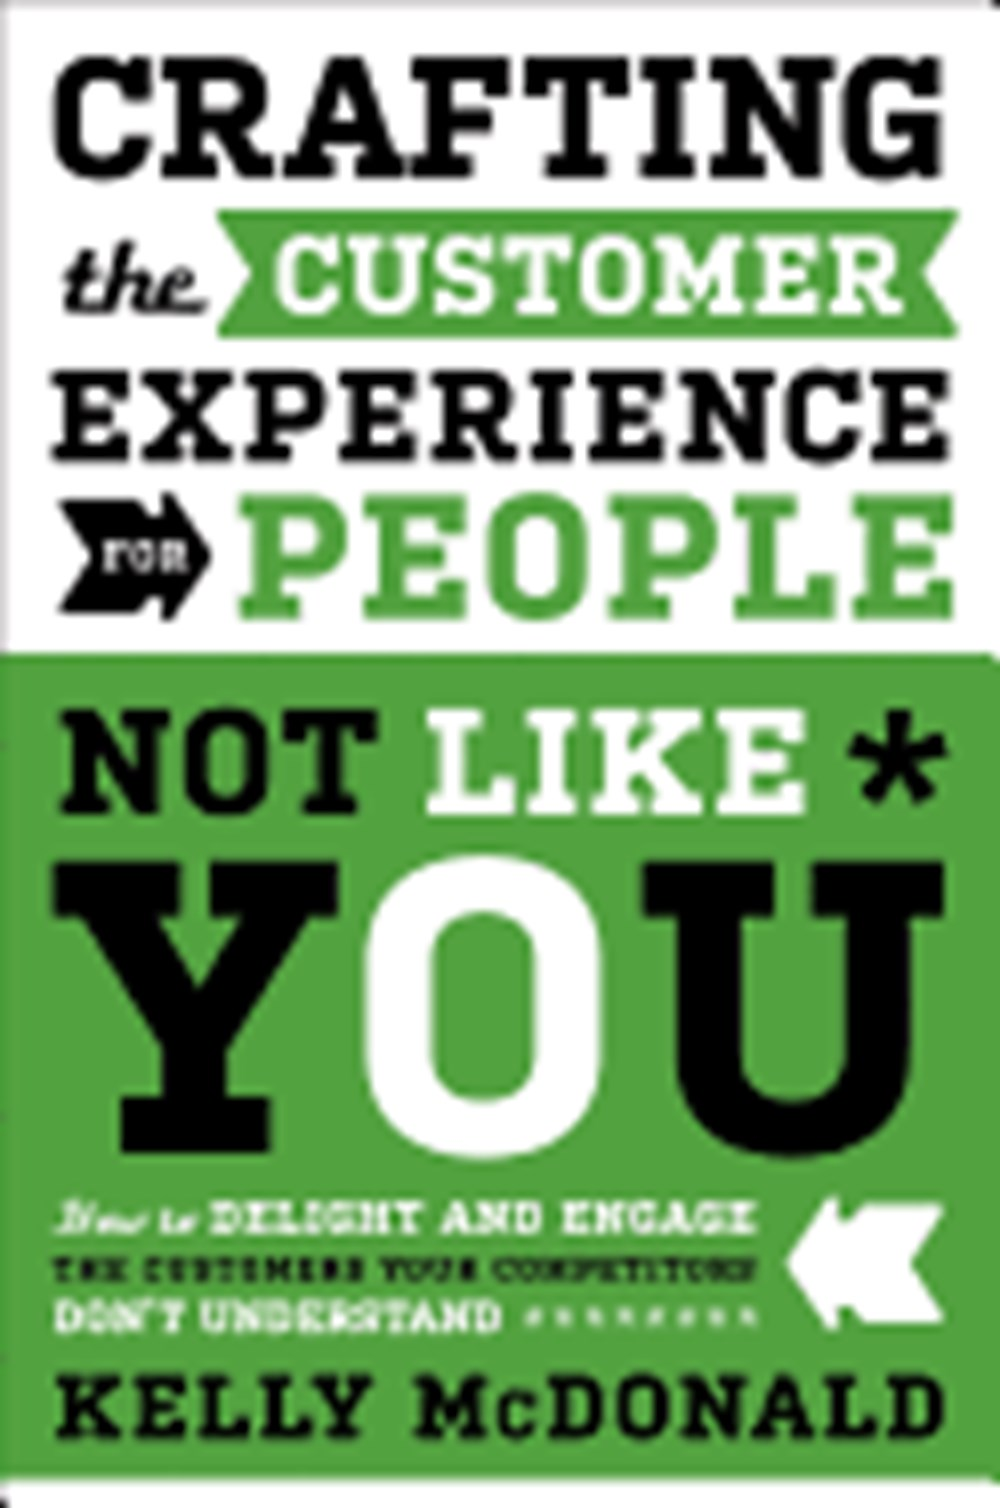 Crafting the Customer Experience for People Not Like You How to Delight and Engage the Customers You